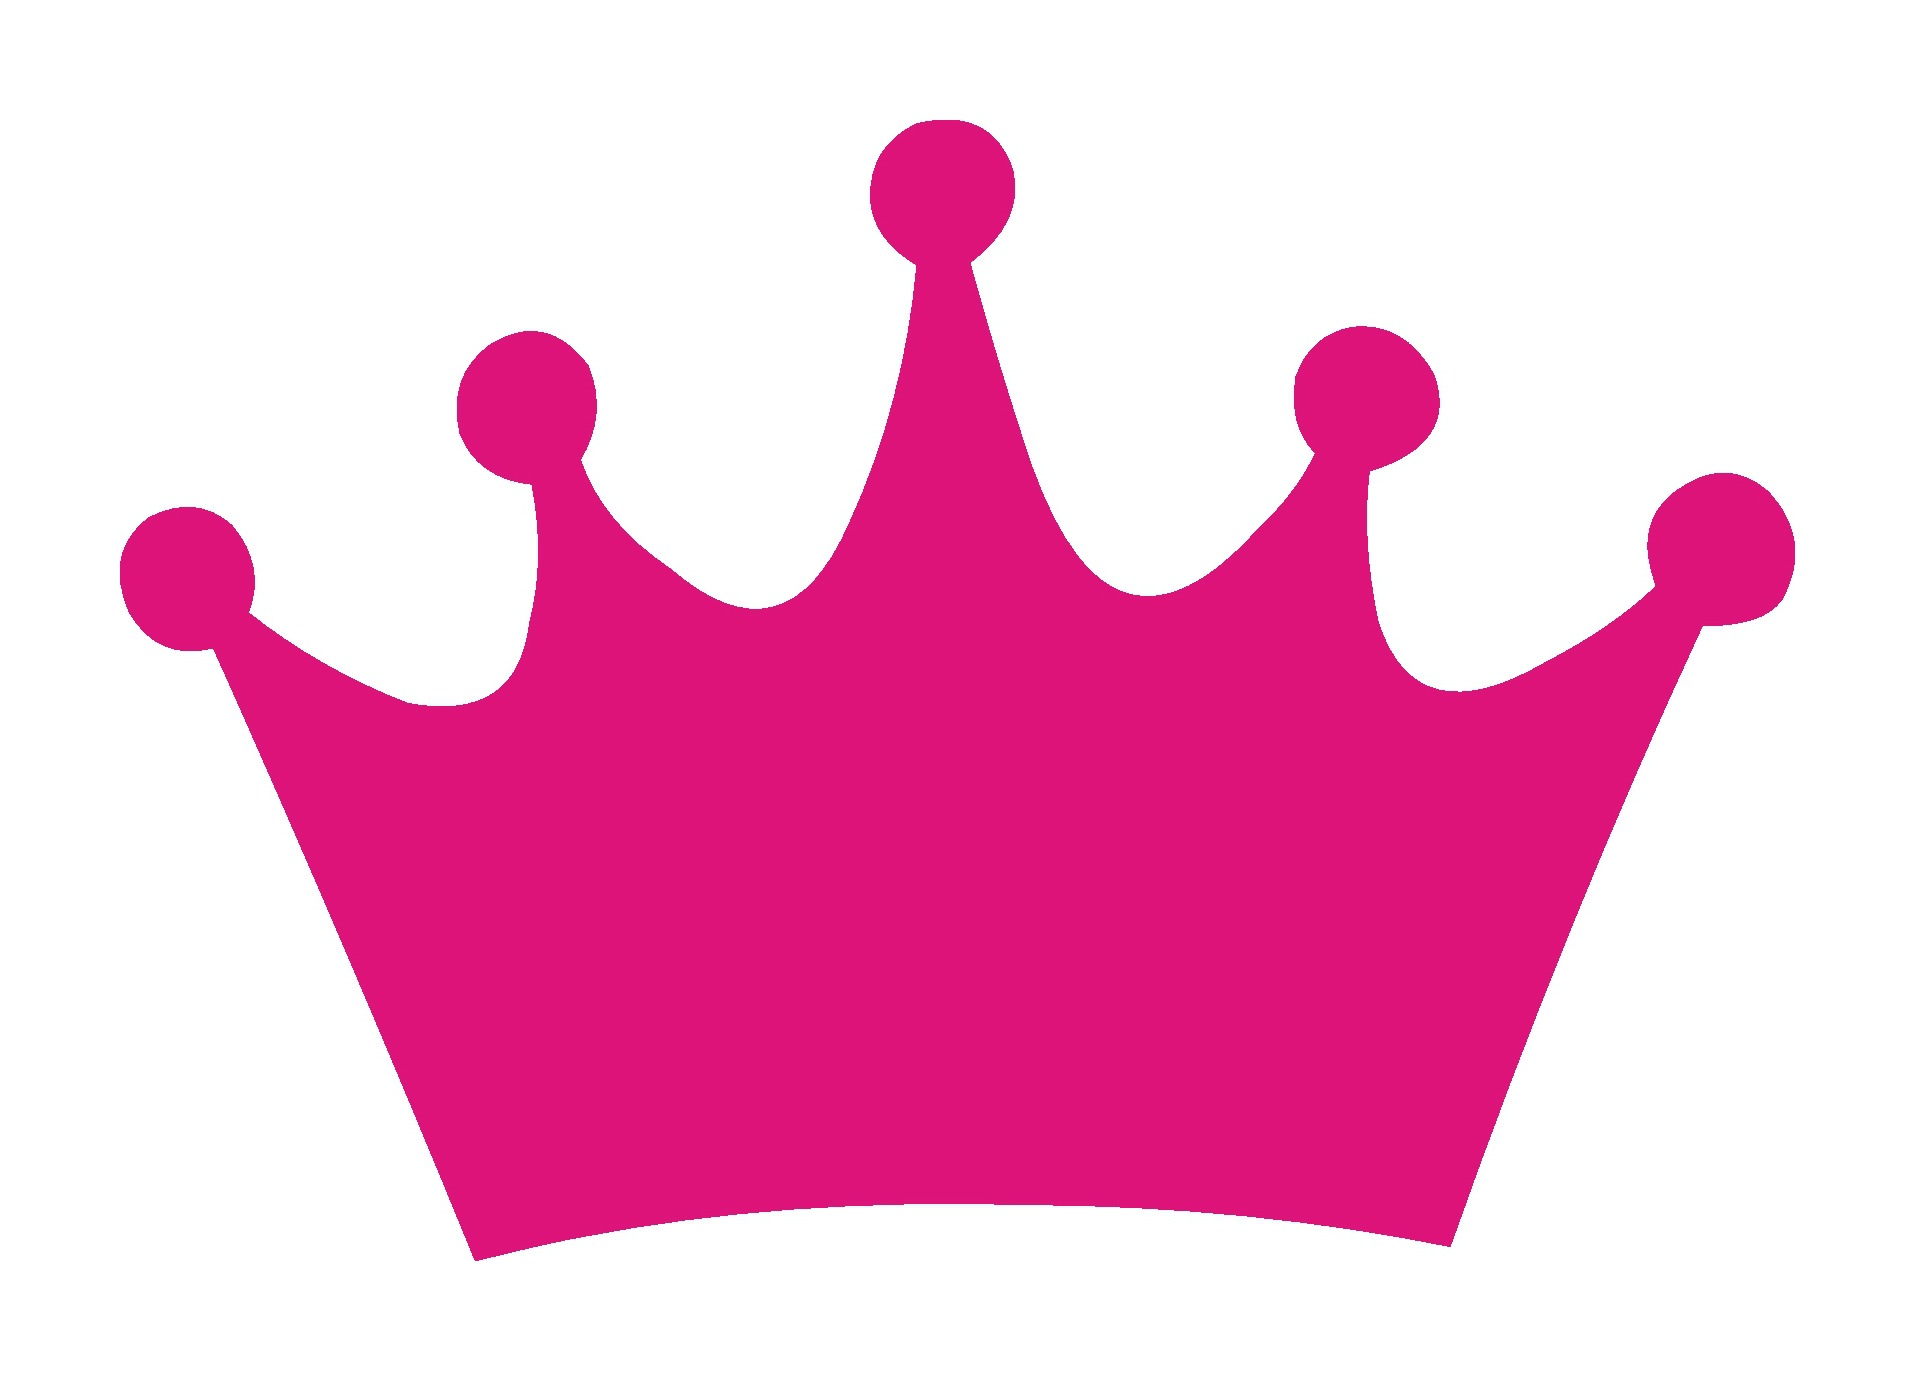 This is best Princess Crown Clipart Princess Crown Png Clipart Free Clip Art  Images for your project or presentation to use for personal or commersial.